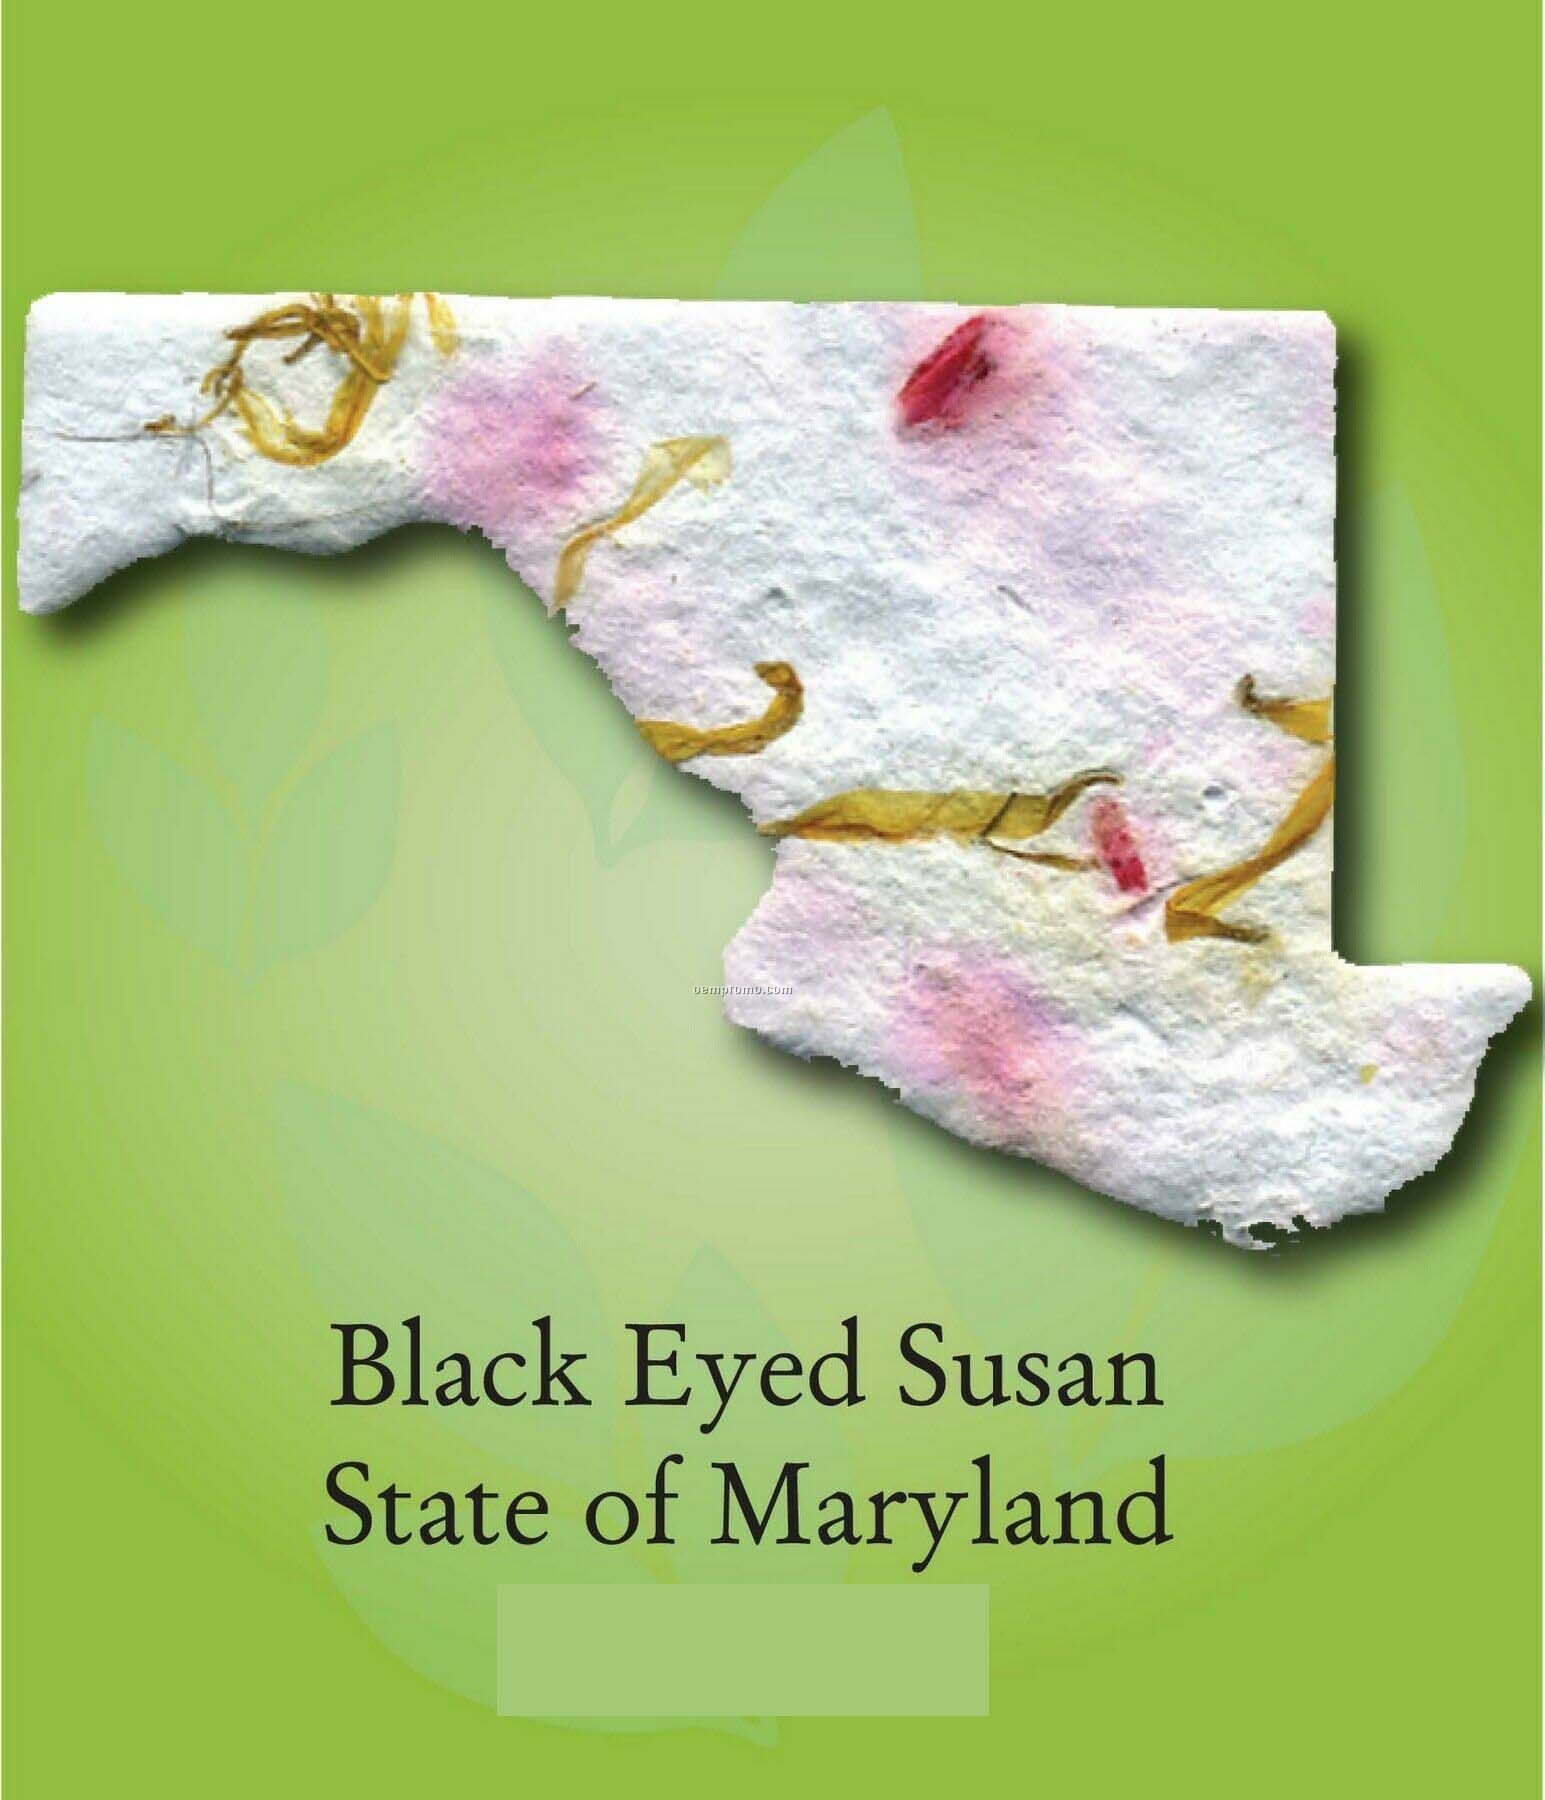 Black Eyed Susan State Of Maryland Ornament With Embedded Seed